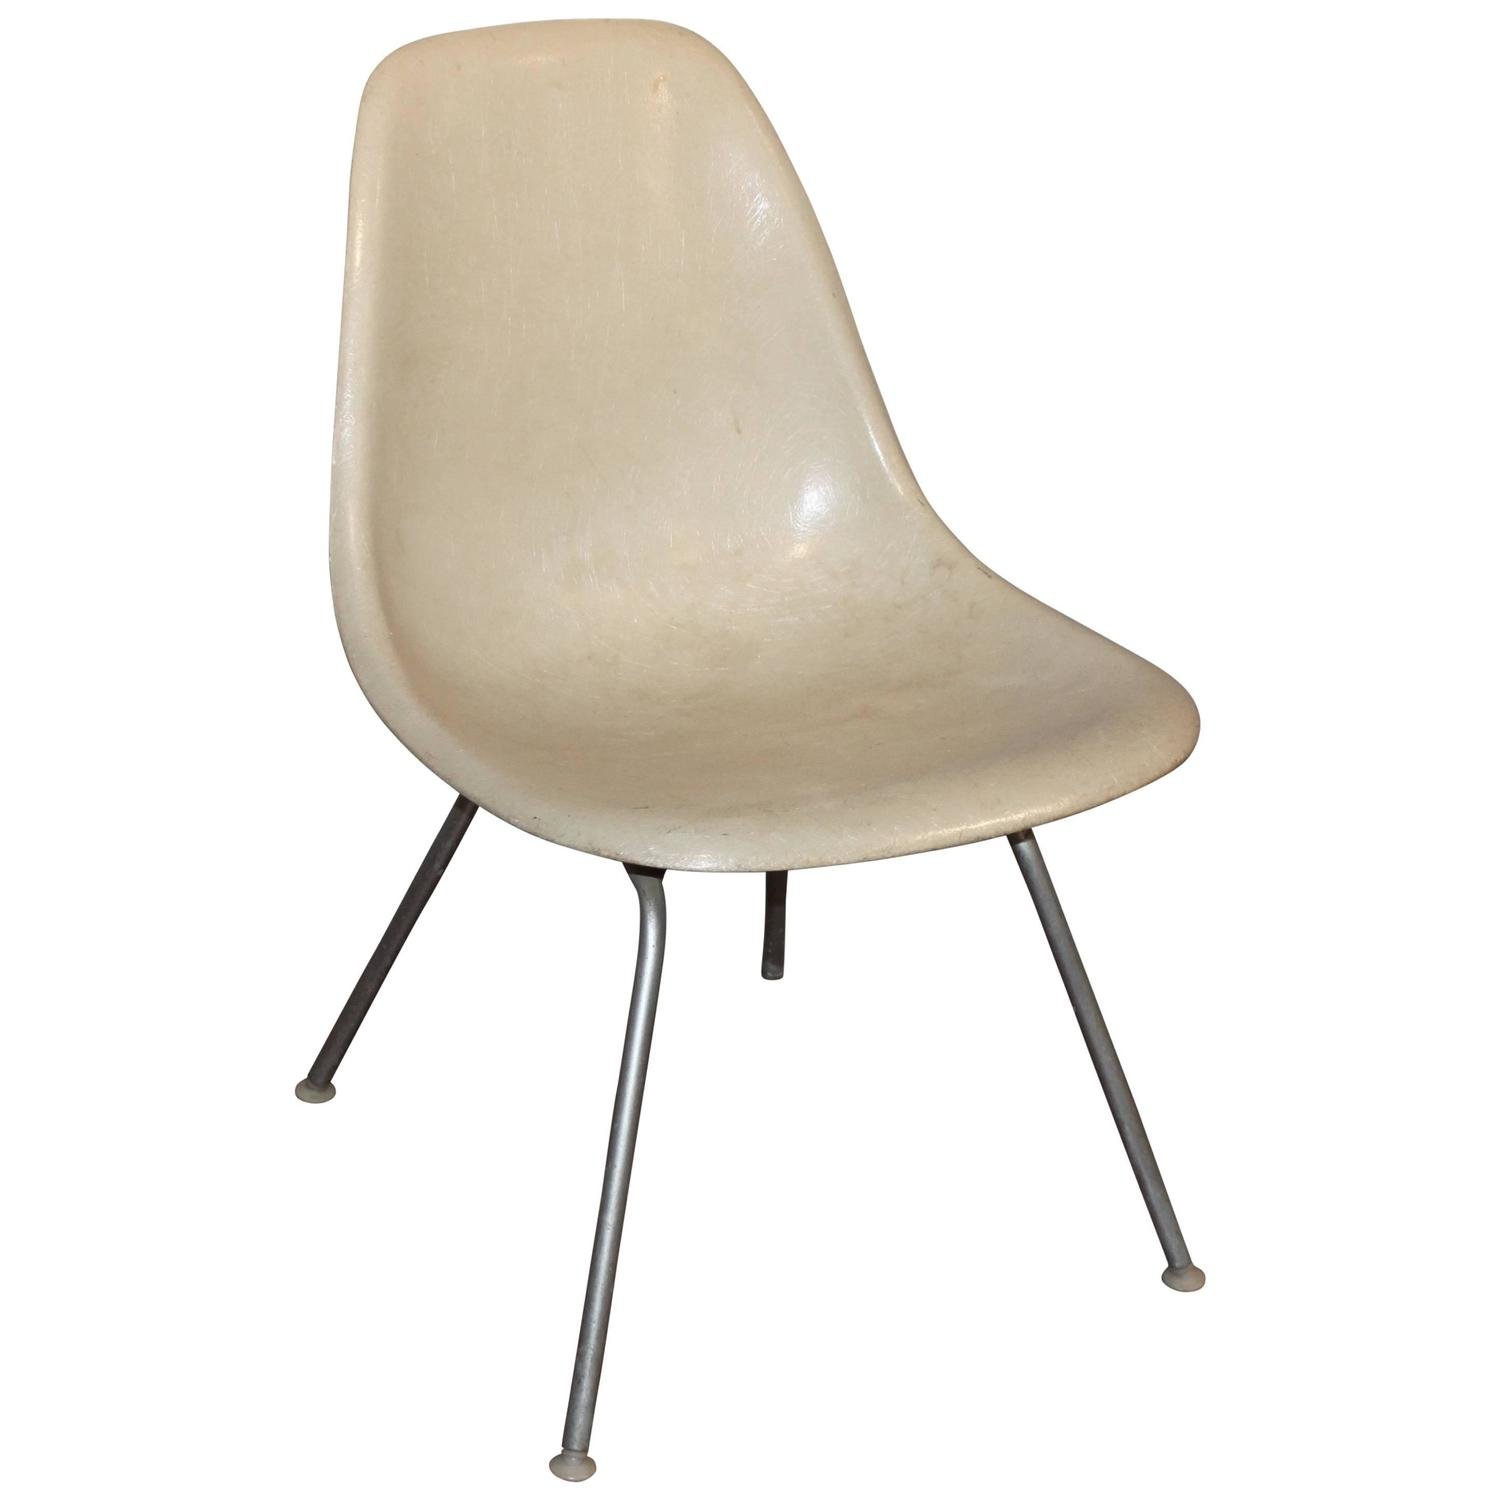 eames low shell chair for sale at 1stdibs. Black Bedroom Furniture Sets. Home Design Ideas